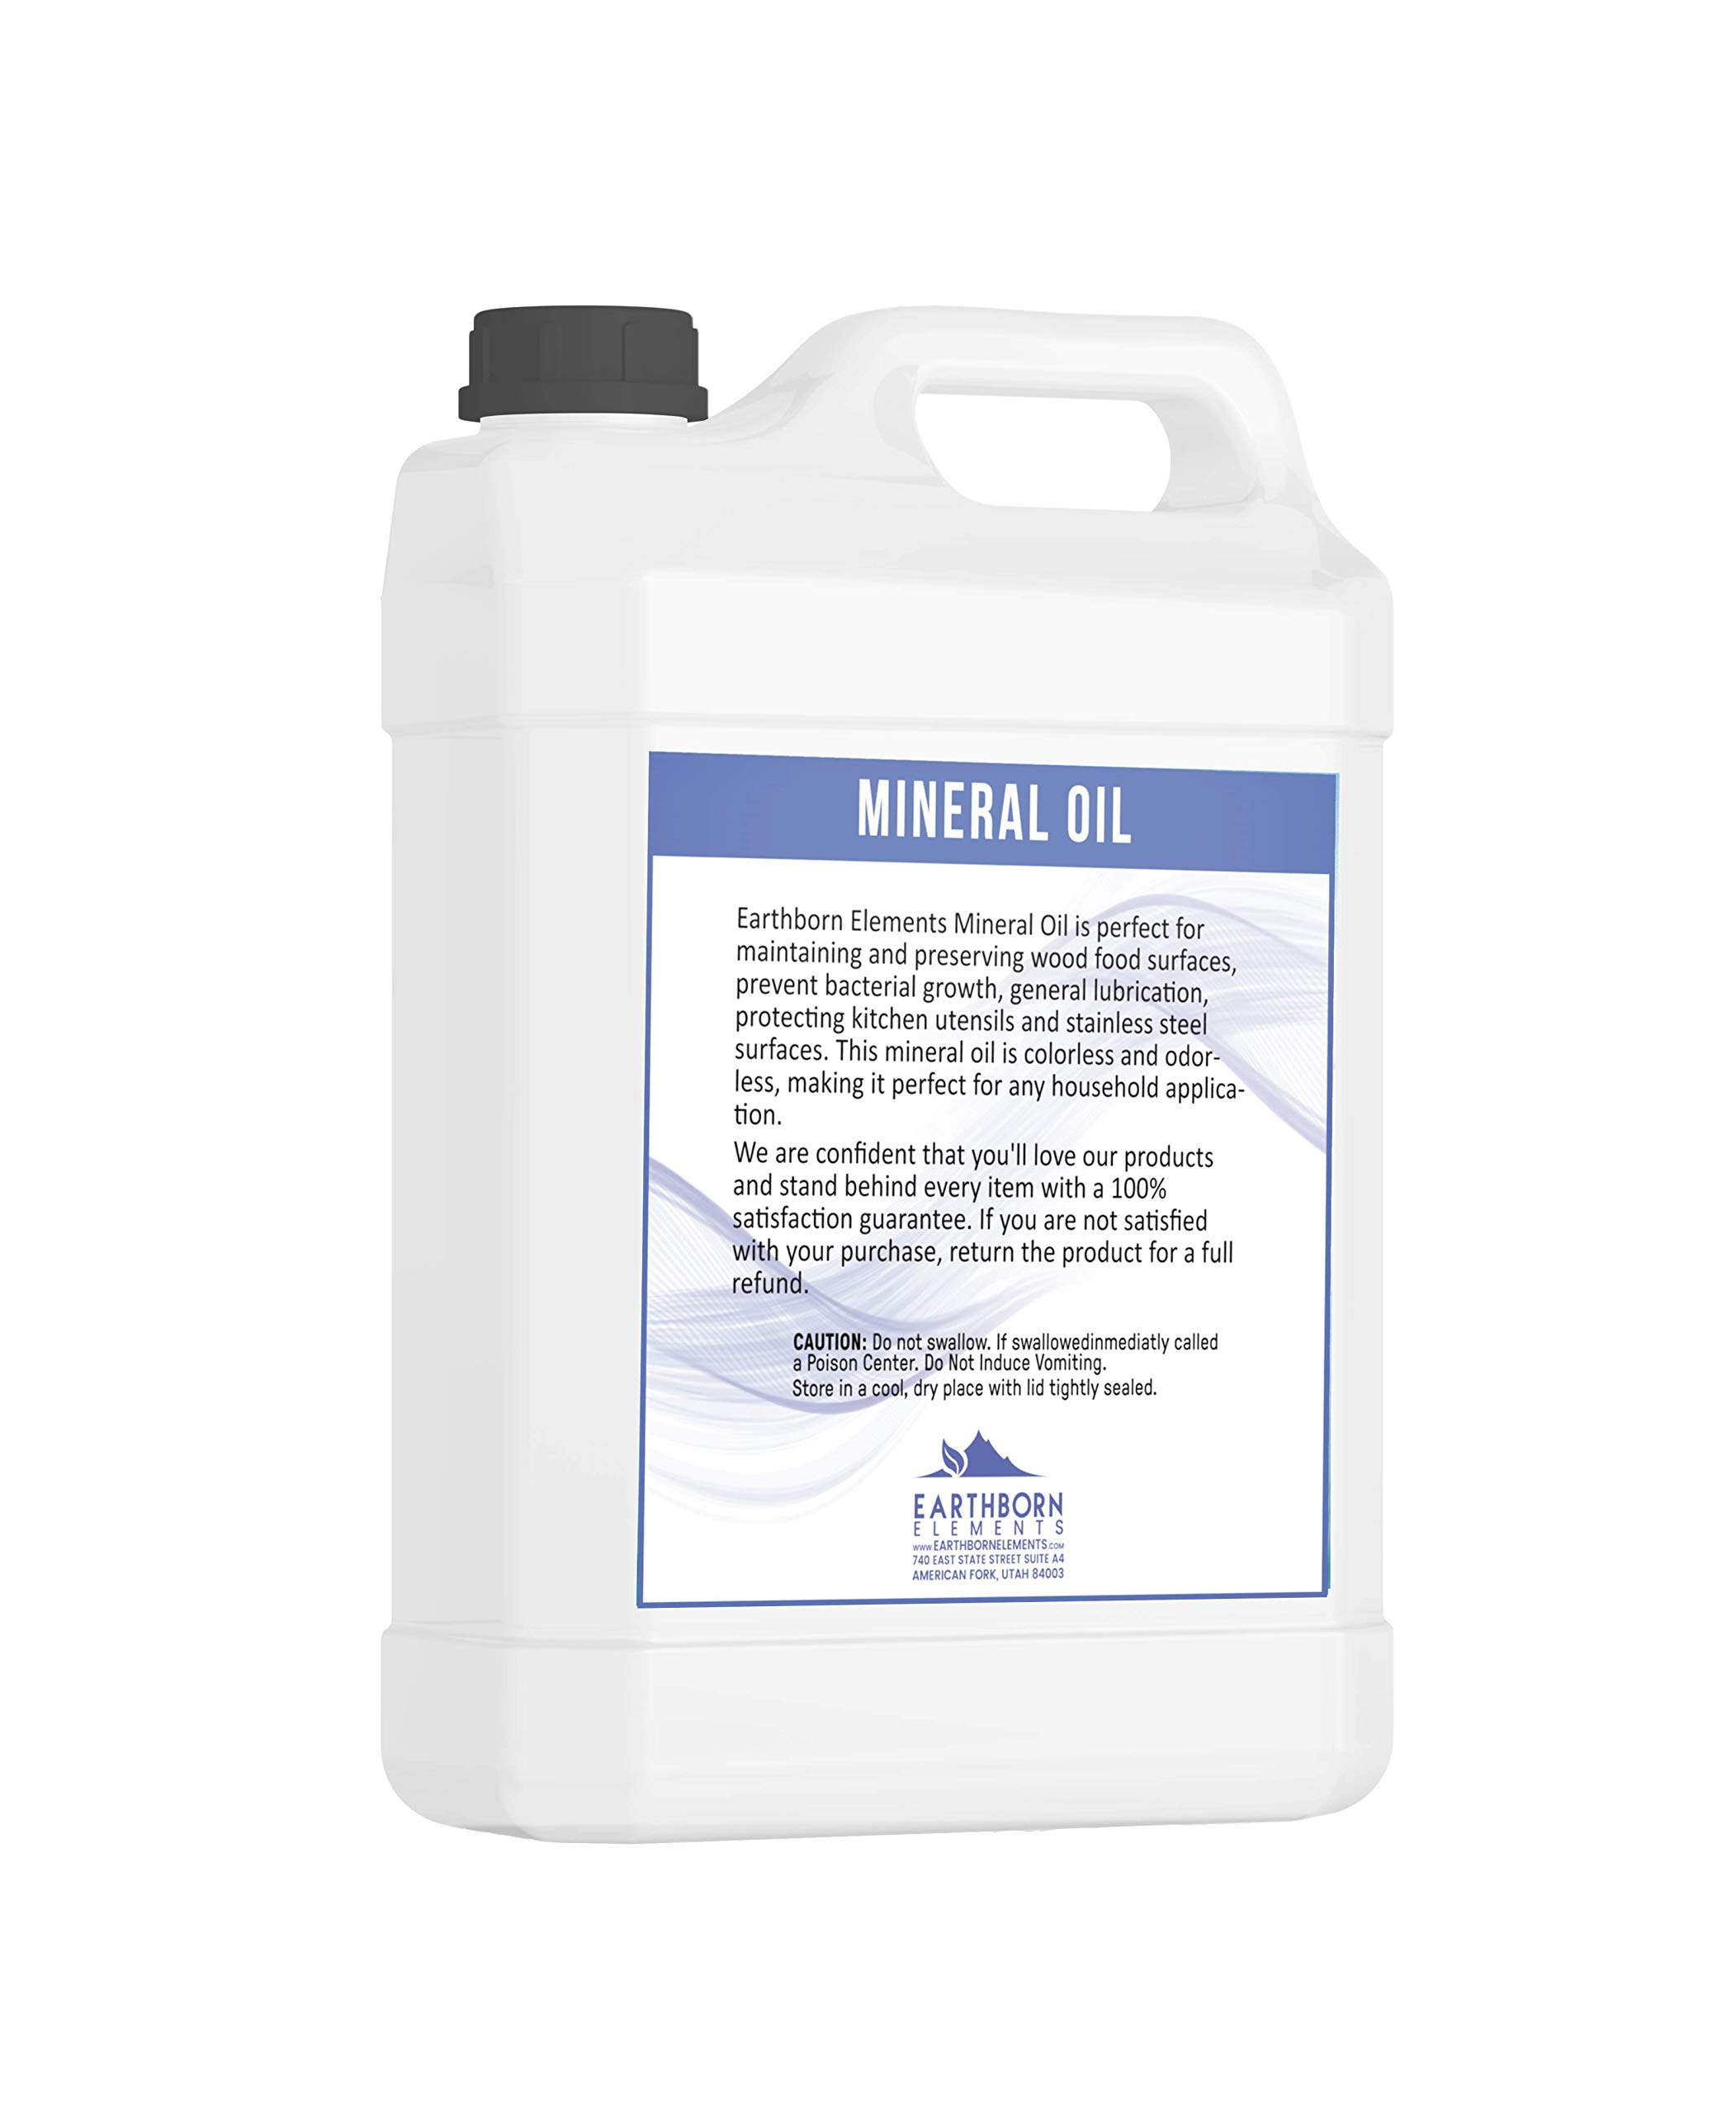 Mineral Oil (1 Gallon) by Earthborn Elements, Food & USP Grade, For Cutting Boards, Butcher Blocks, Counter Tops, Wooden Utensils by Earthborn Elements (Image #2)